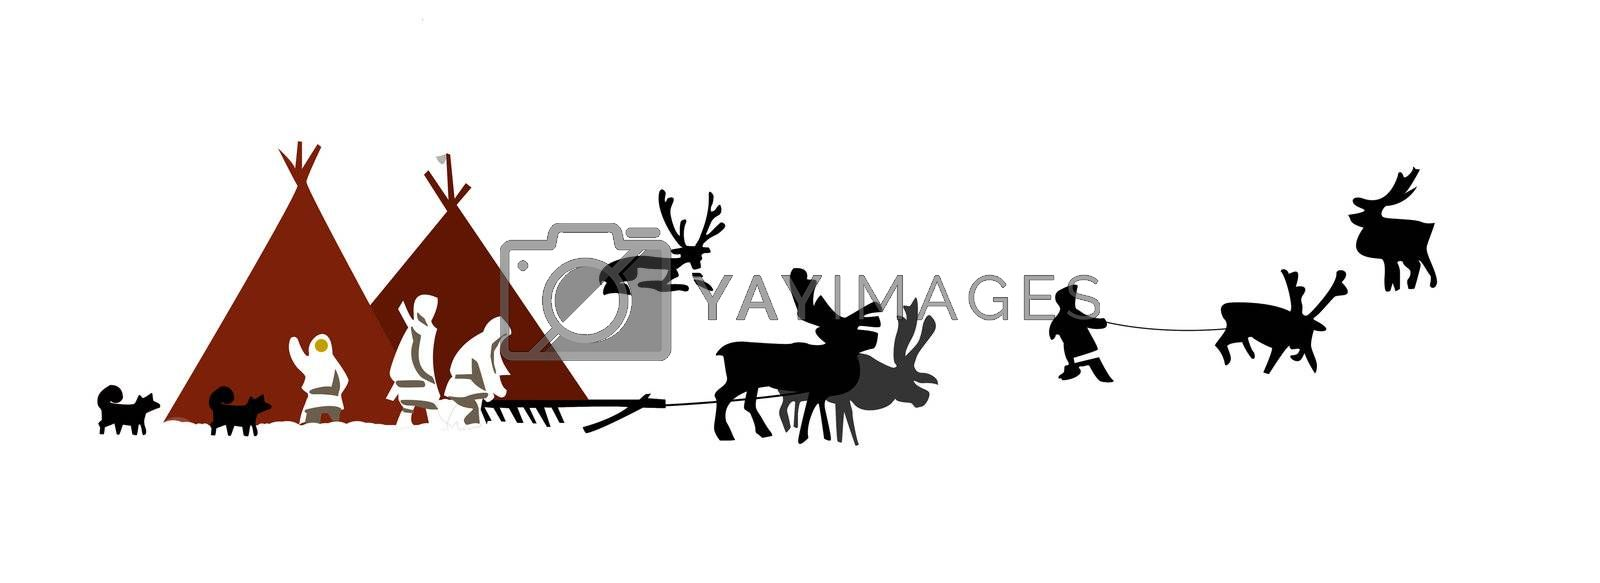 vector  illustration of the people on north by basel101658